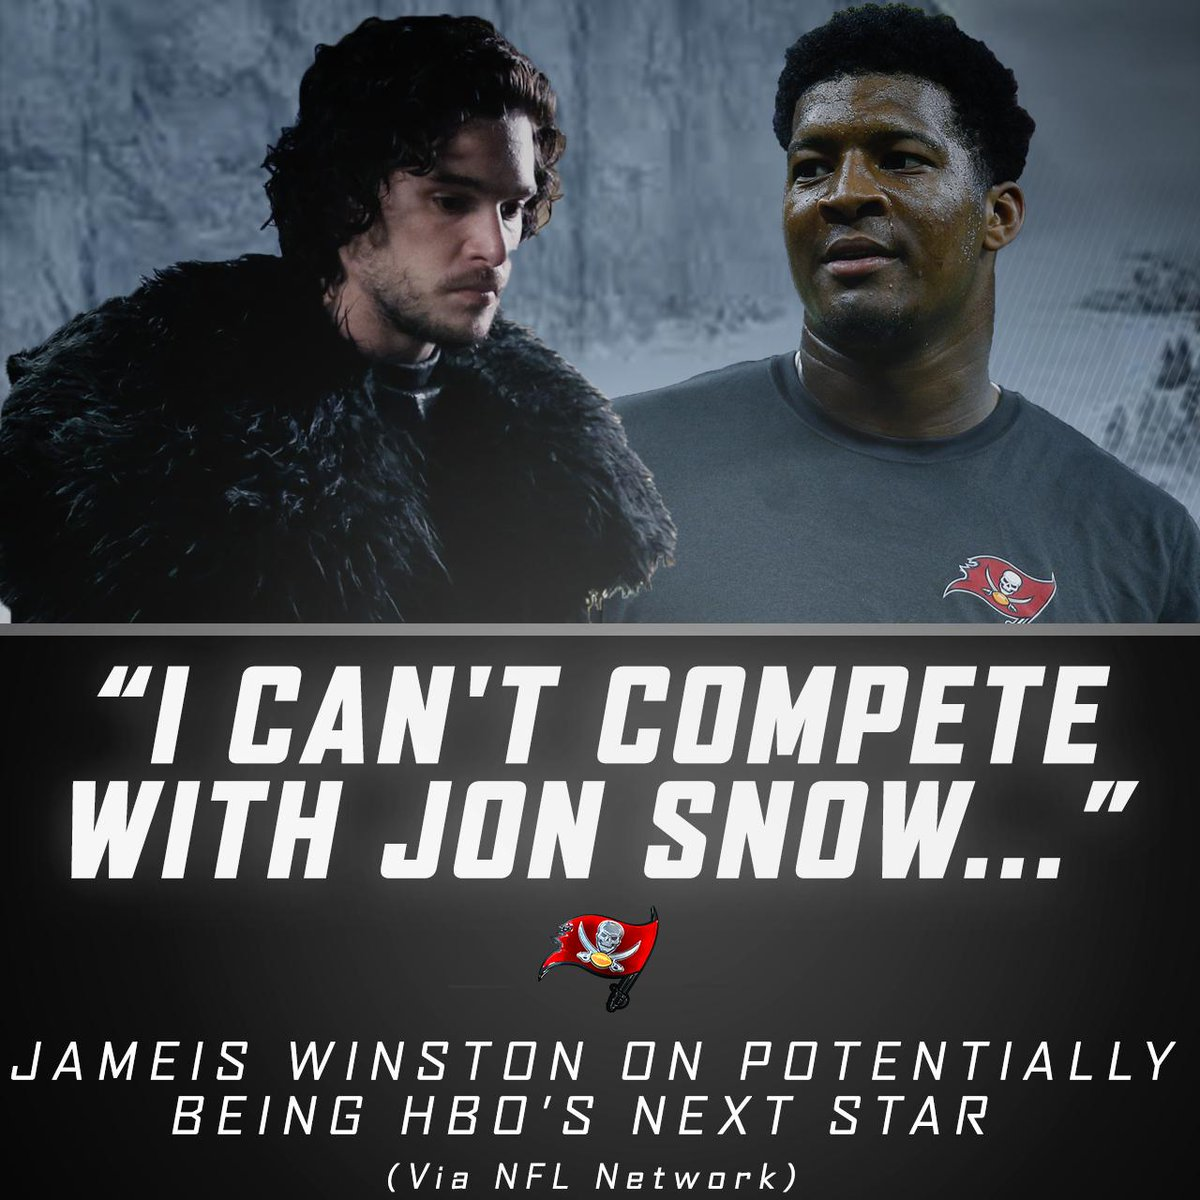 """Jameis Winston will be appearing on HBO's """"Hard Knocks.""""  But the QB knows he can't compete with the new King in the North."""